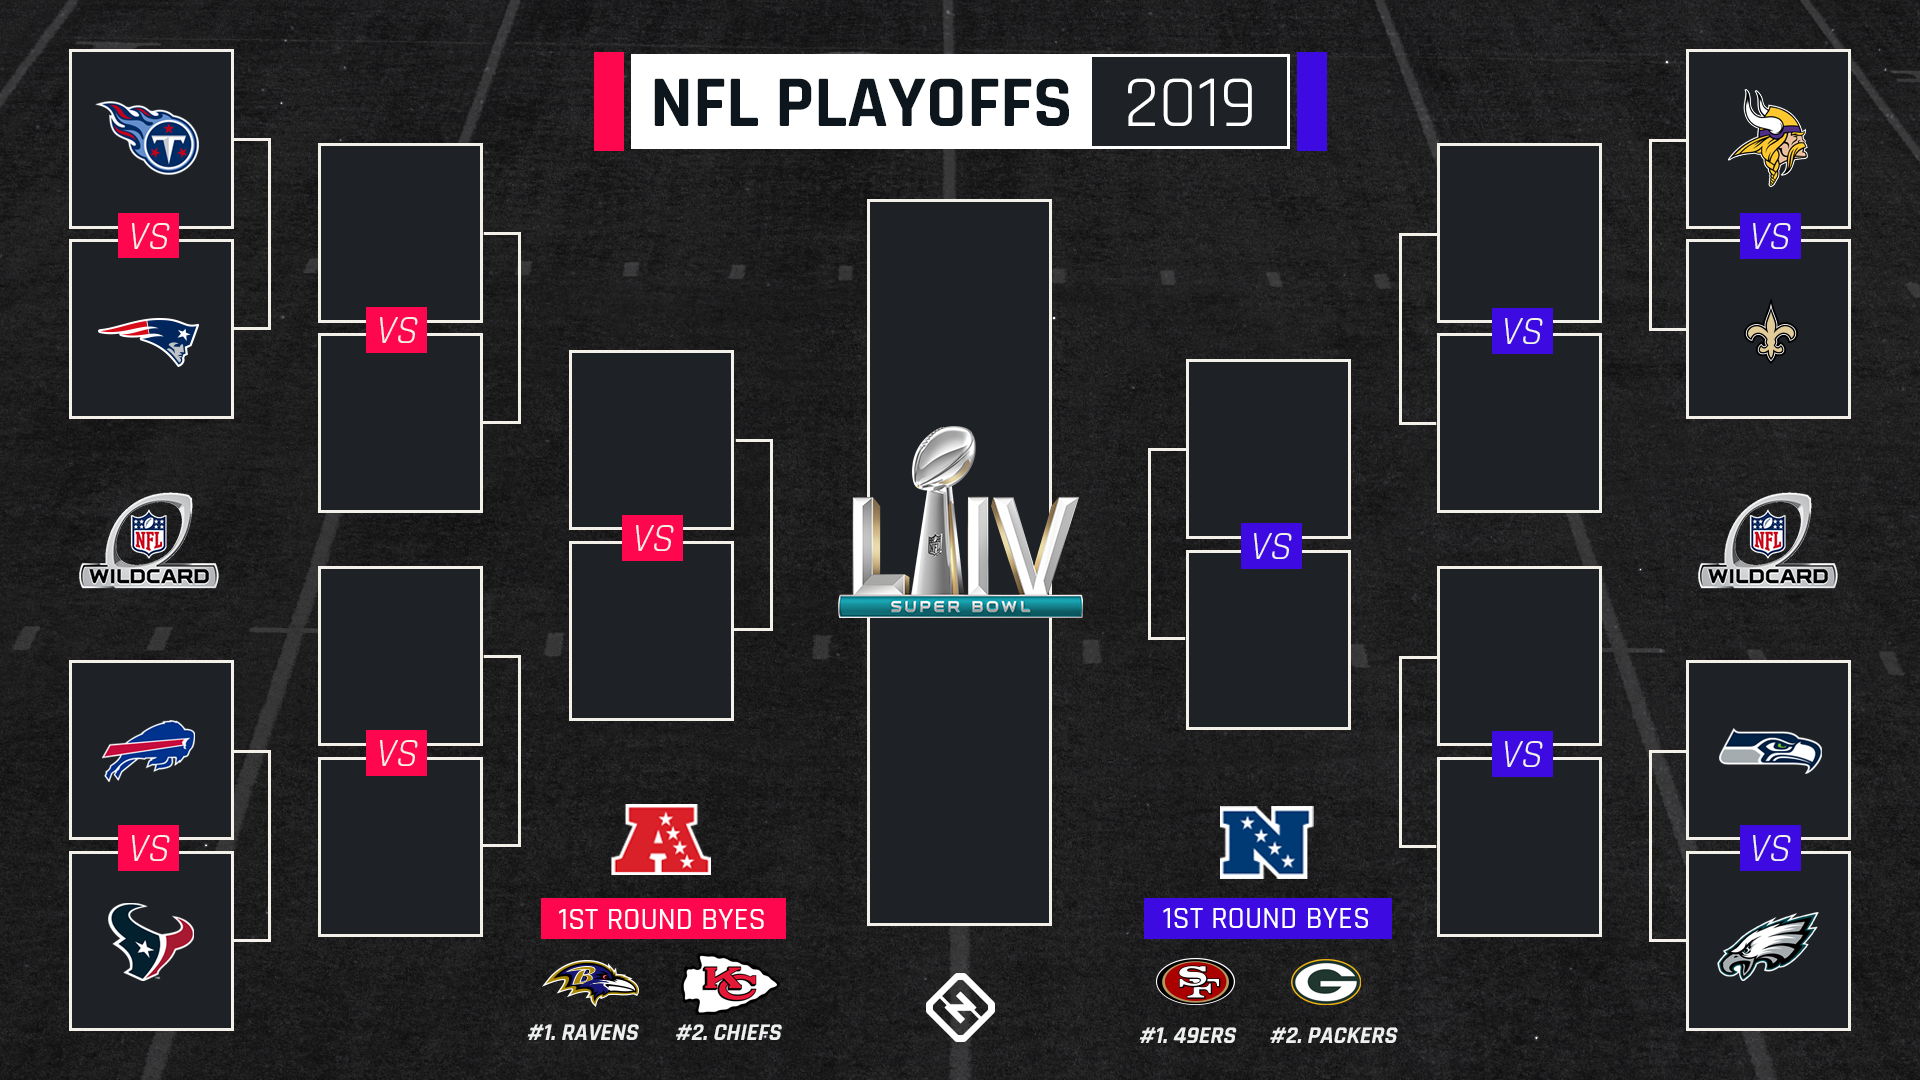 There Are 2 NFL Playoff Games Today - Here's The Schedule ...